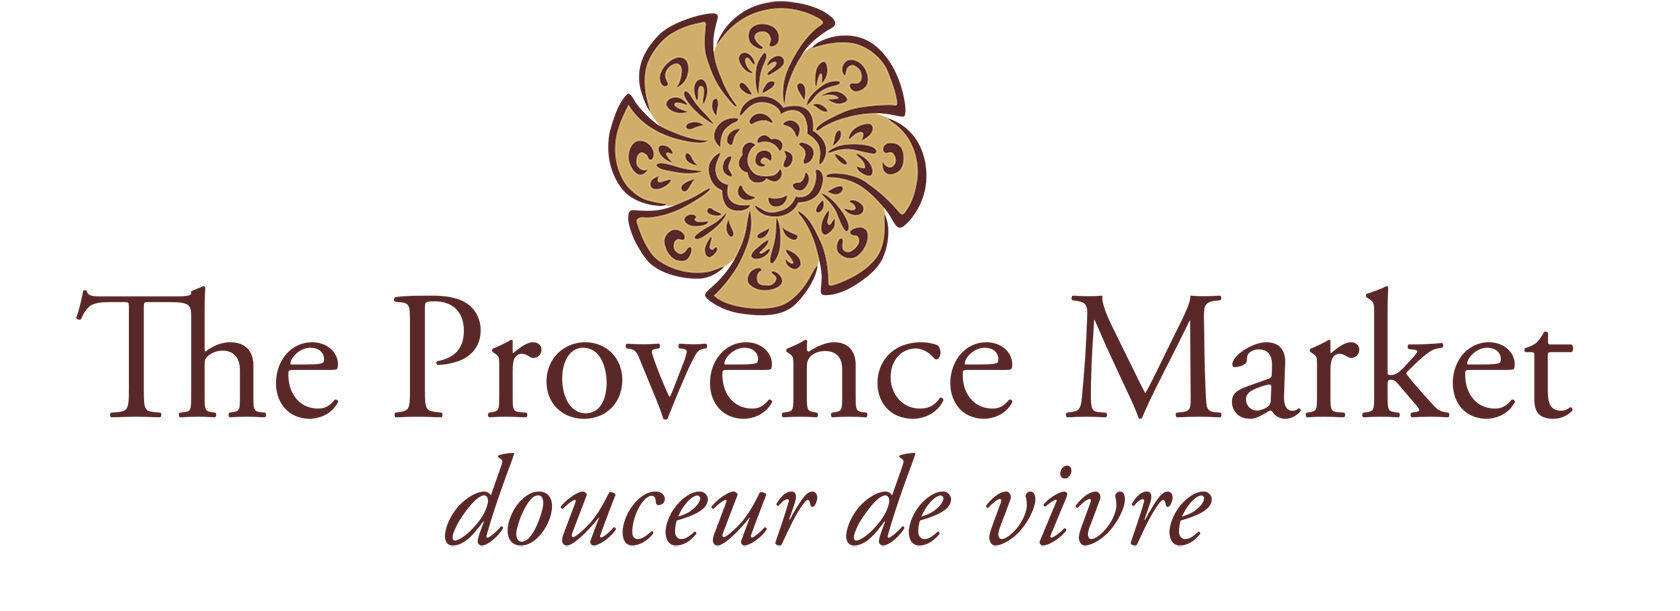 LOGO The Provence Market Provence Market Lifestyle Fashion